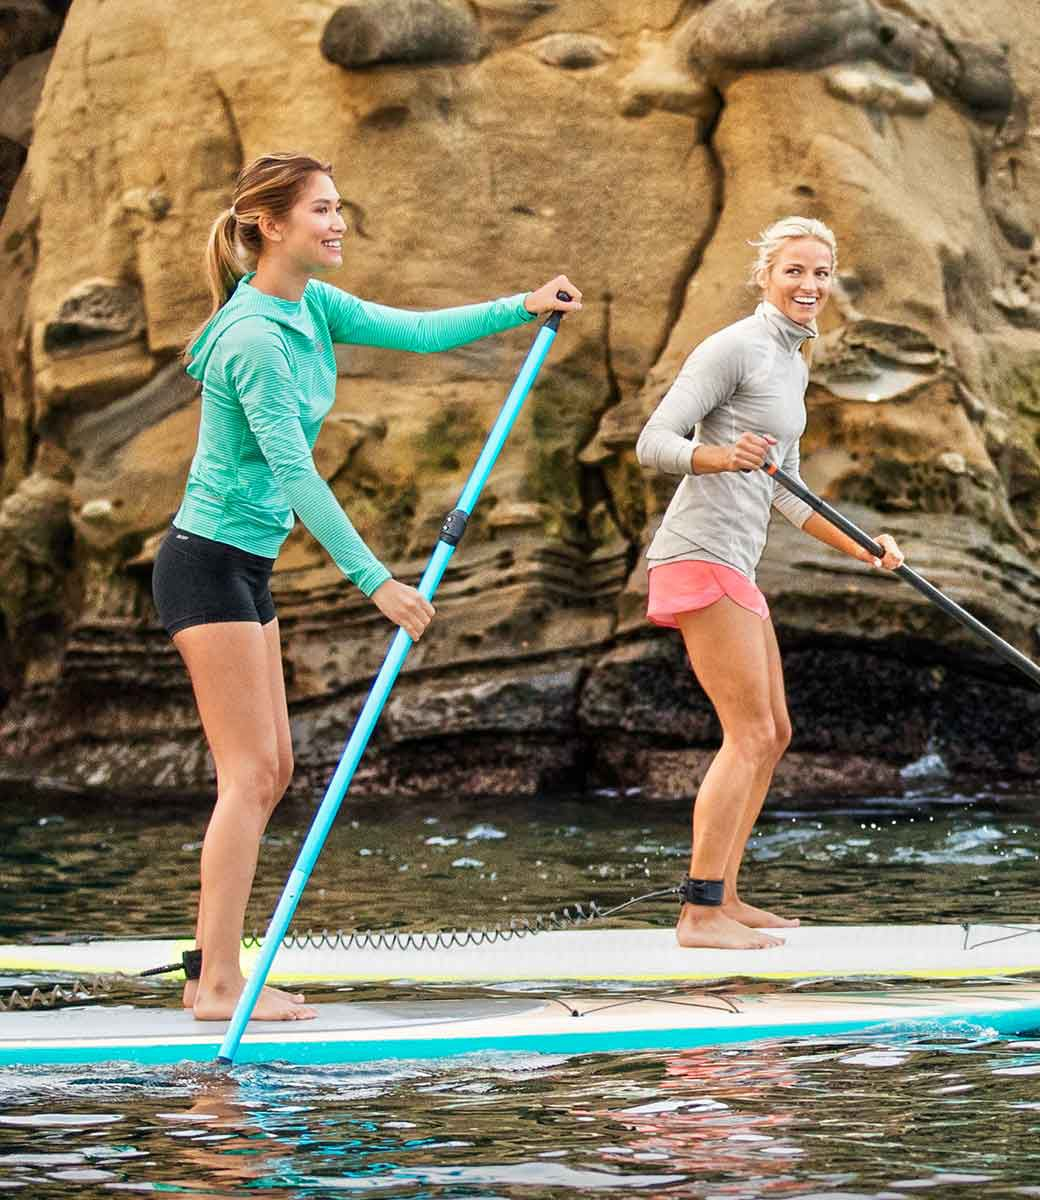 New Balance US Womens Stay Fit While You Travel Look 1,